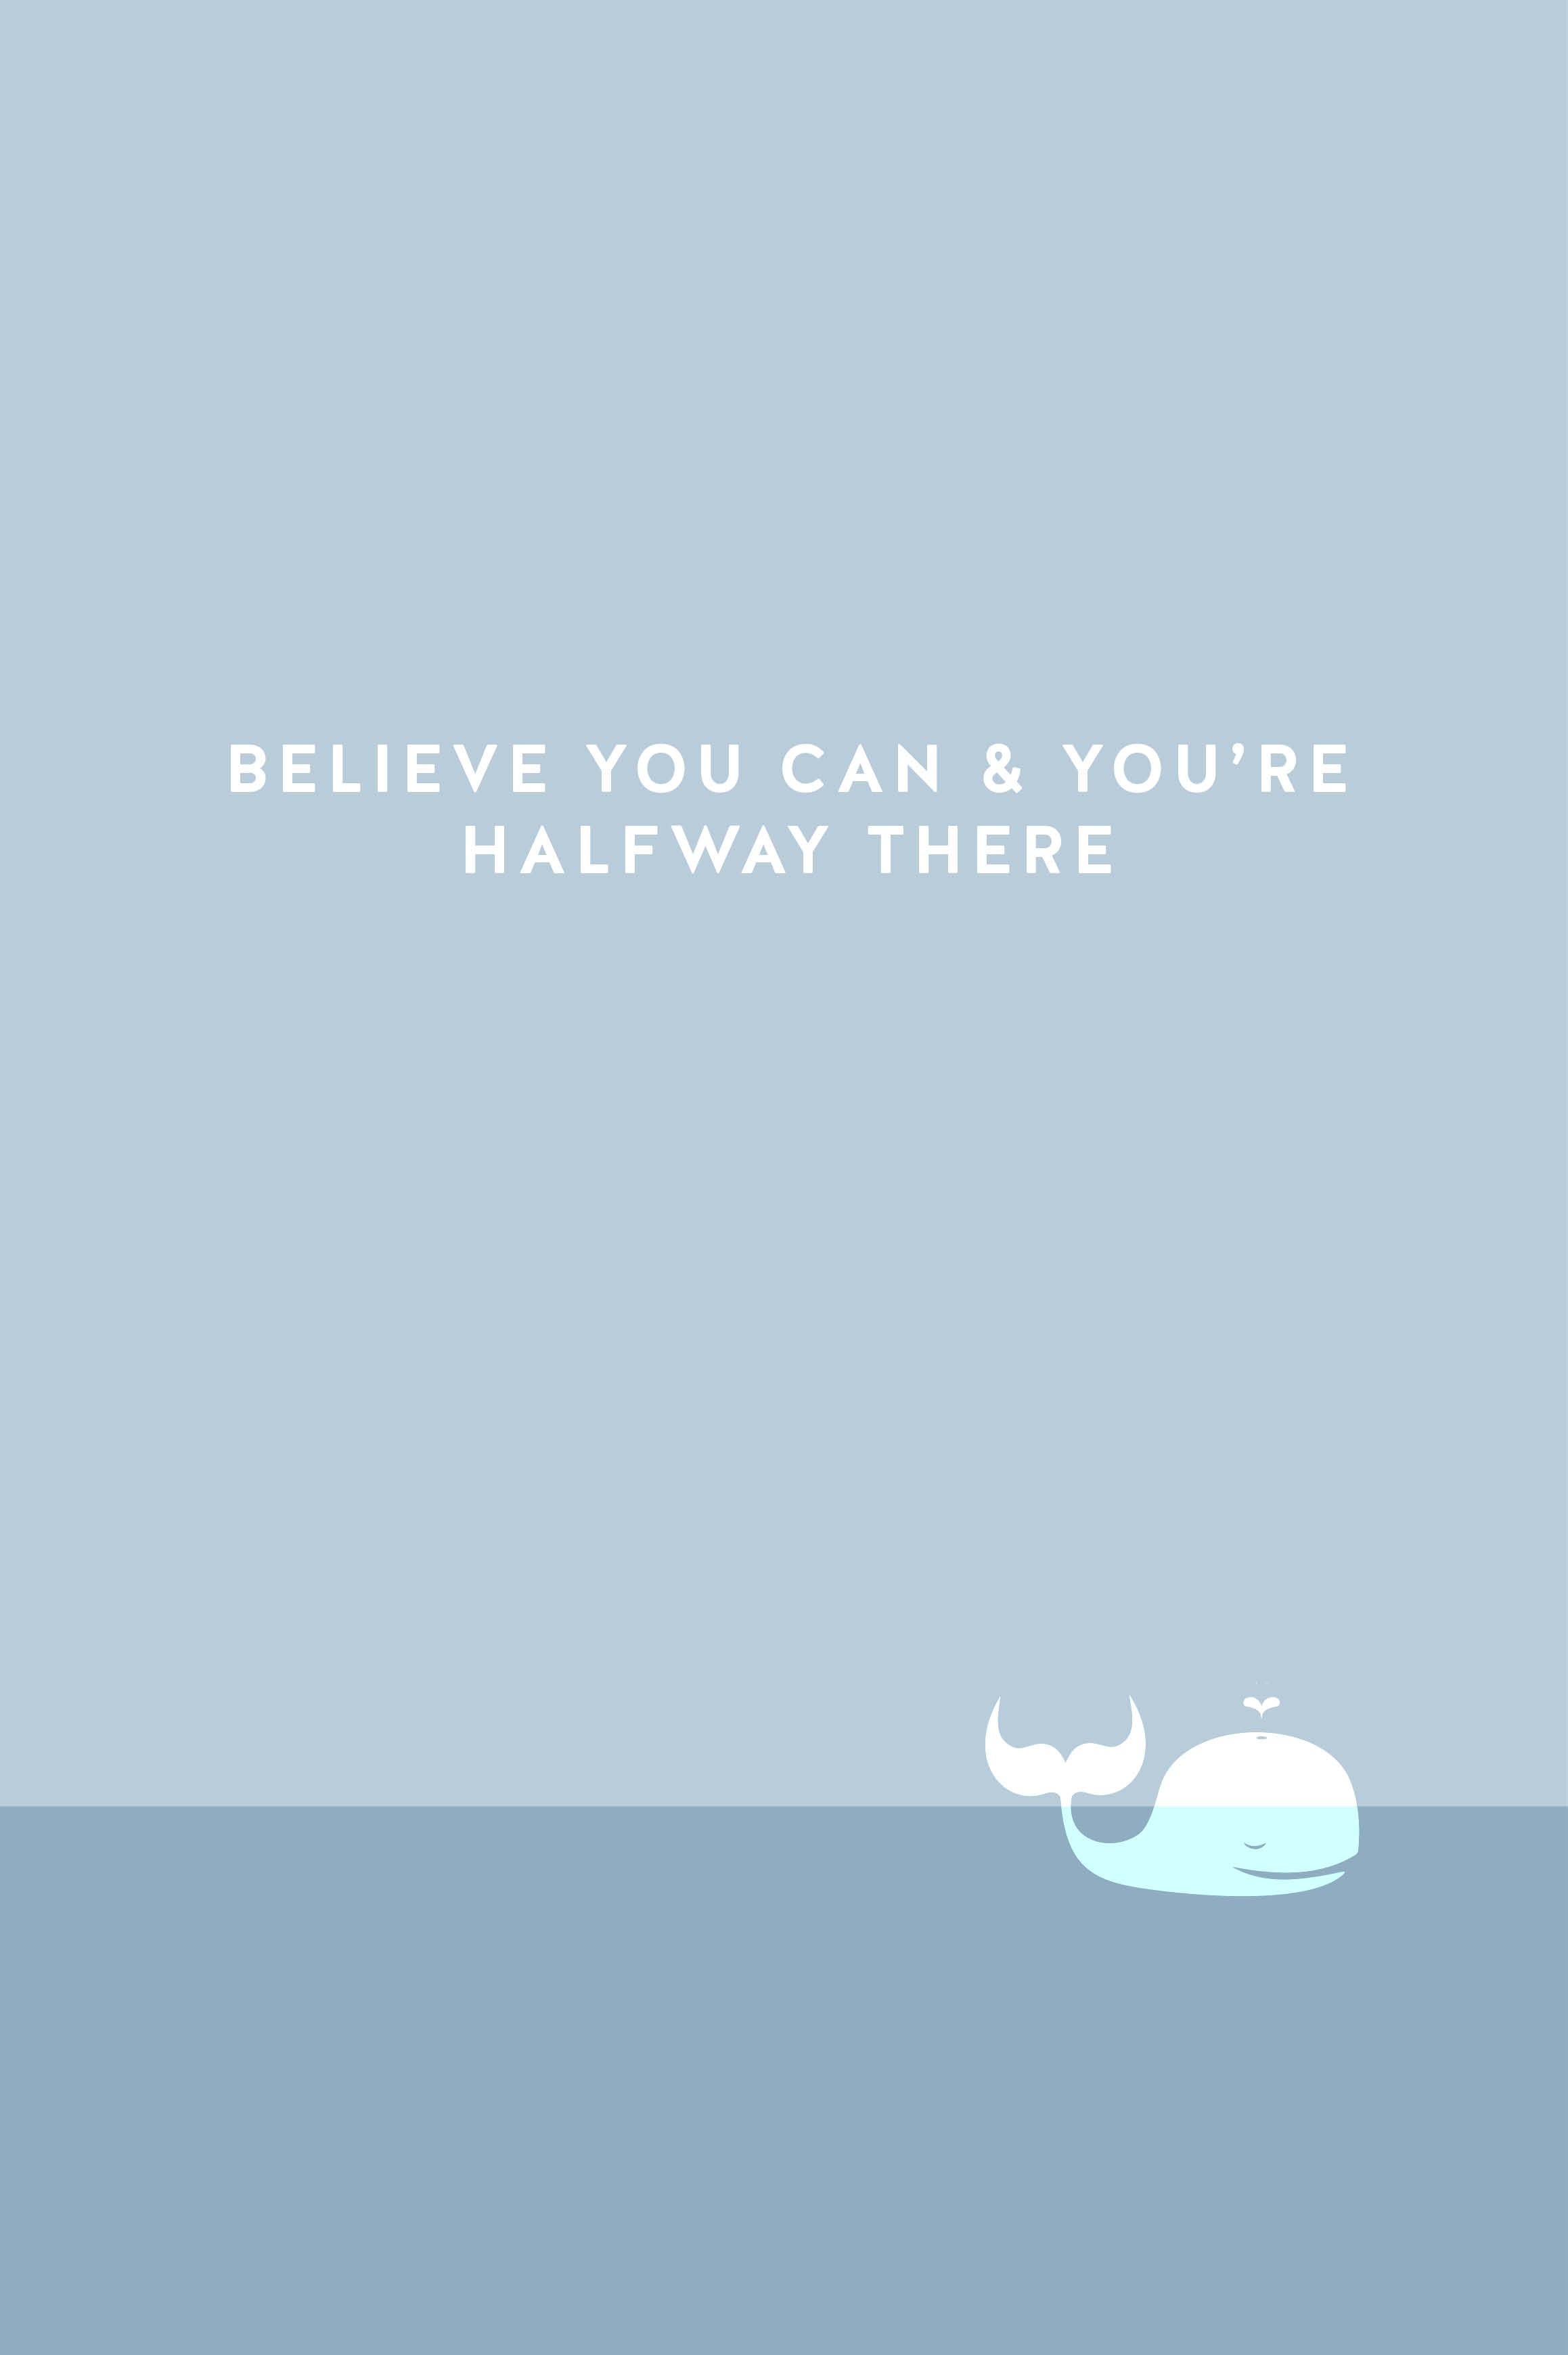 Positive Quote Simple iPhone Wallpaper PanPins